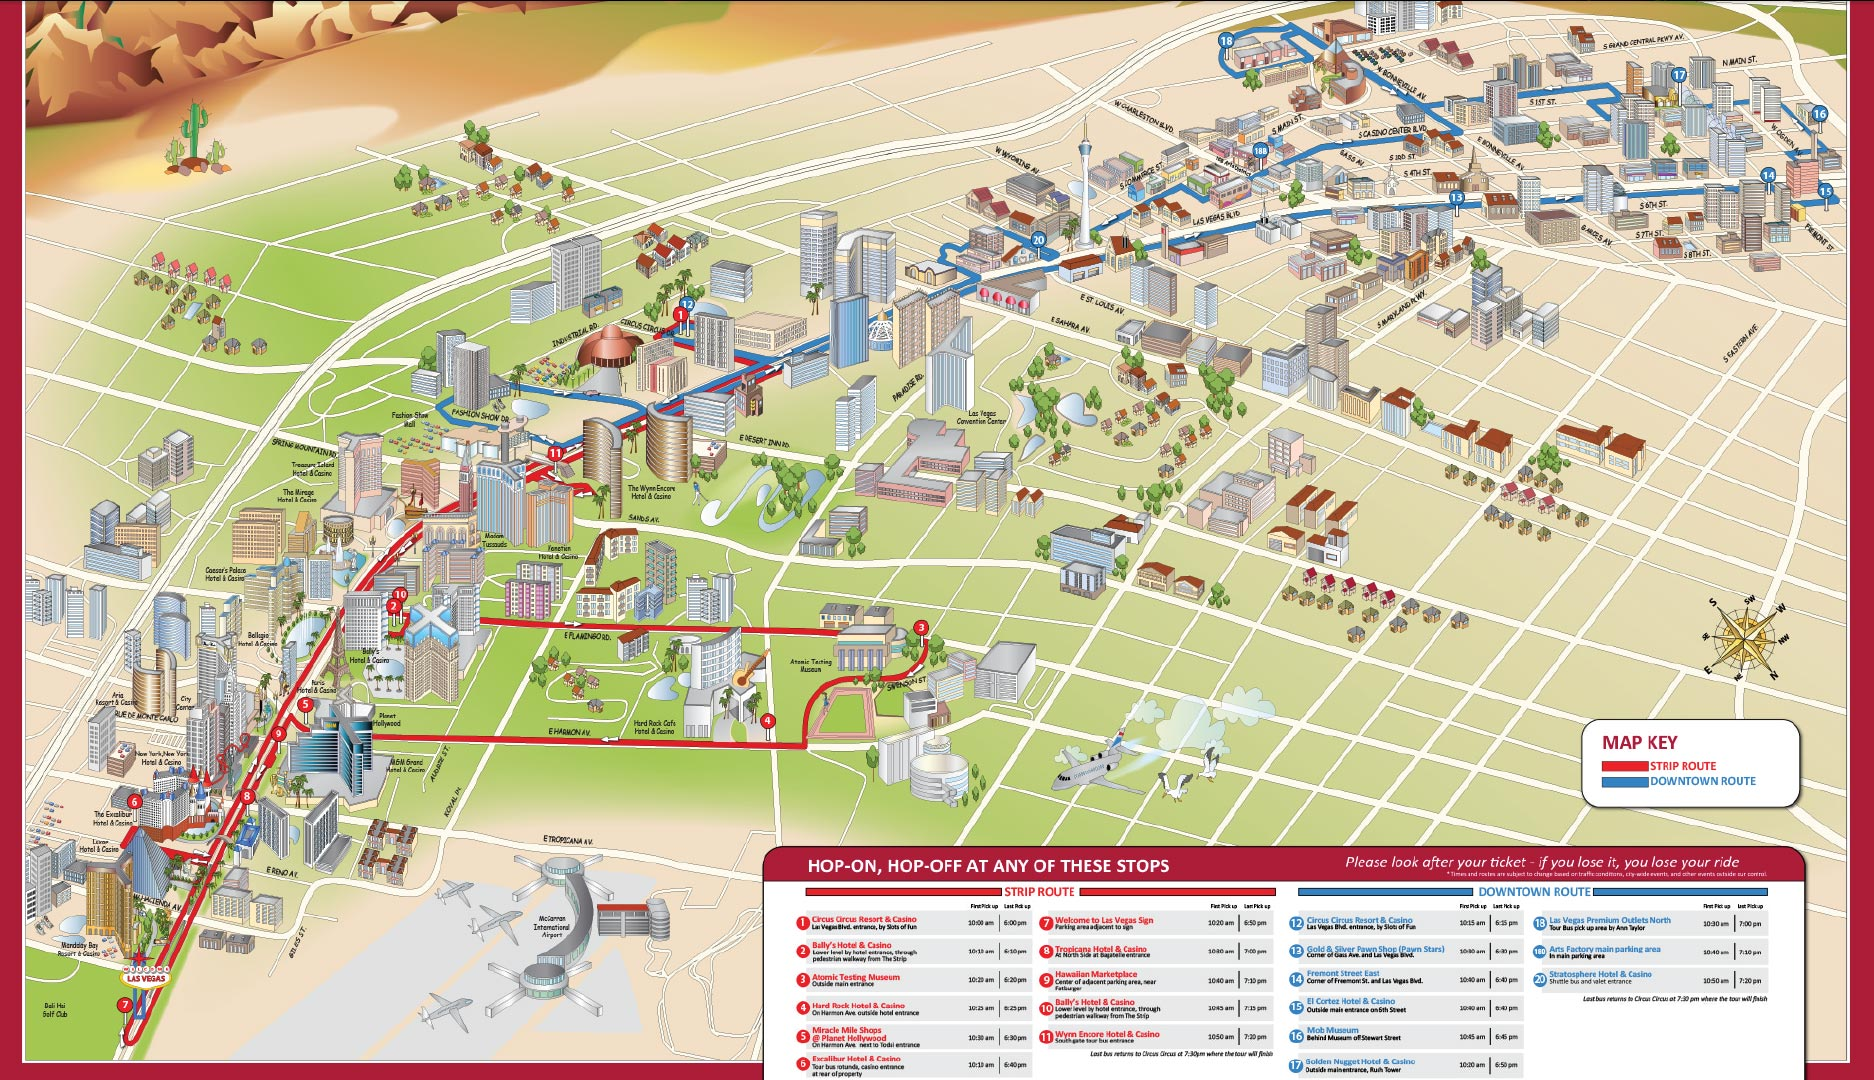 download map of the  loops strip and downtown routes. las vegas hopon hopoff  ticmate